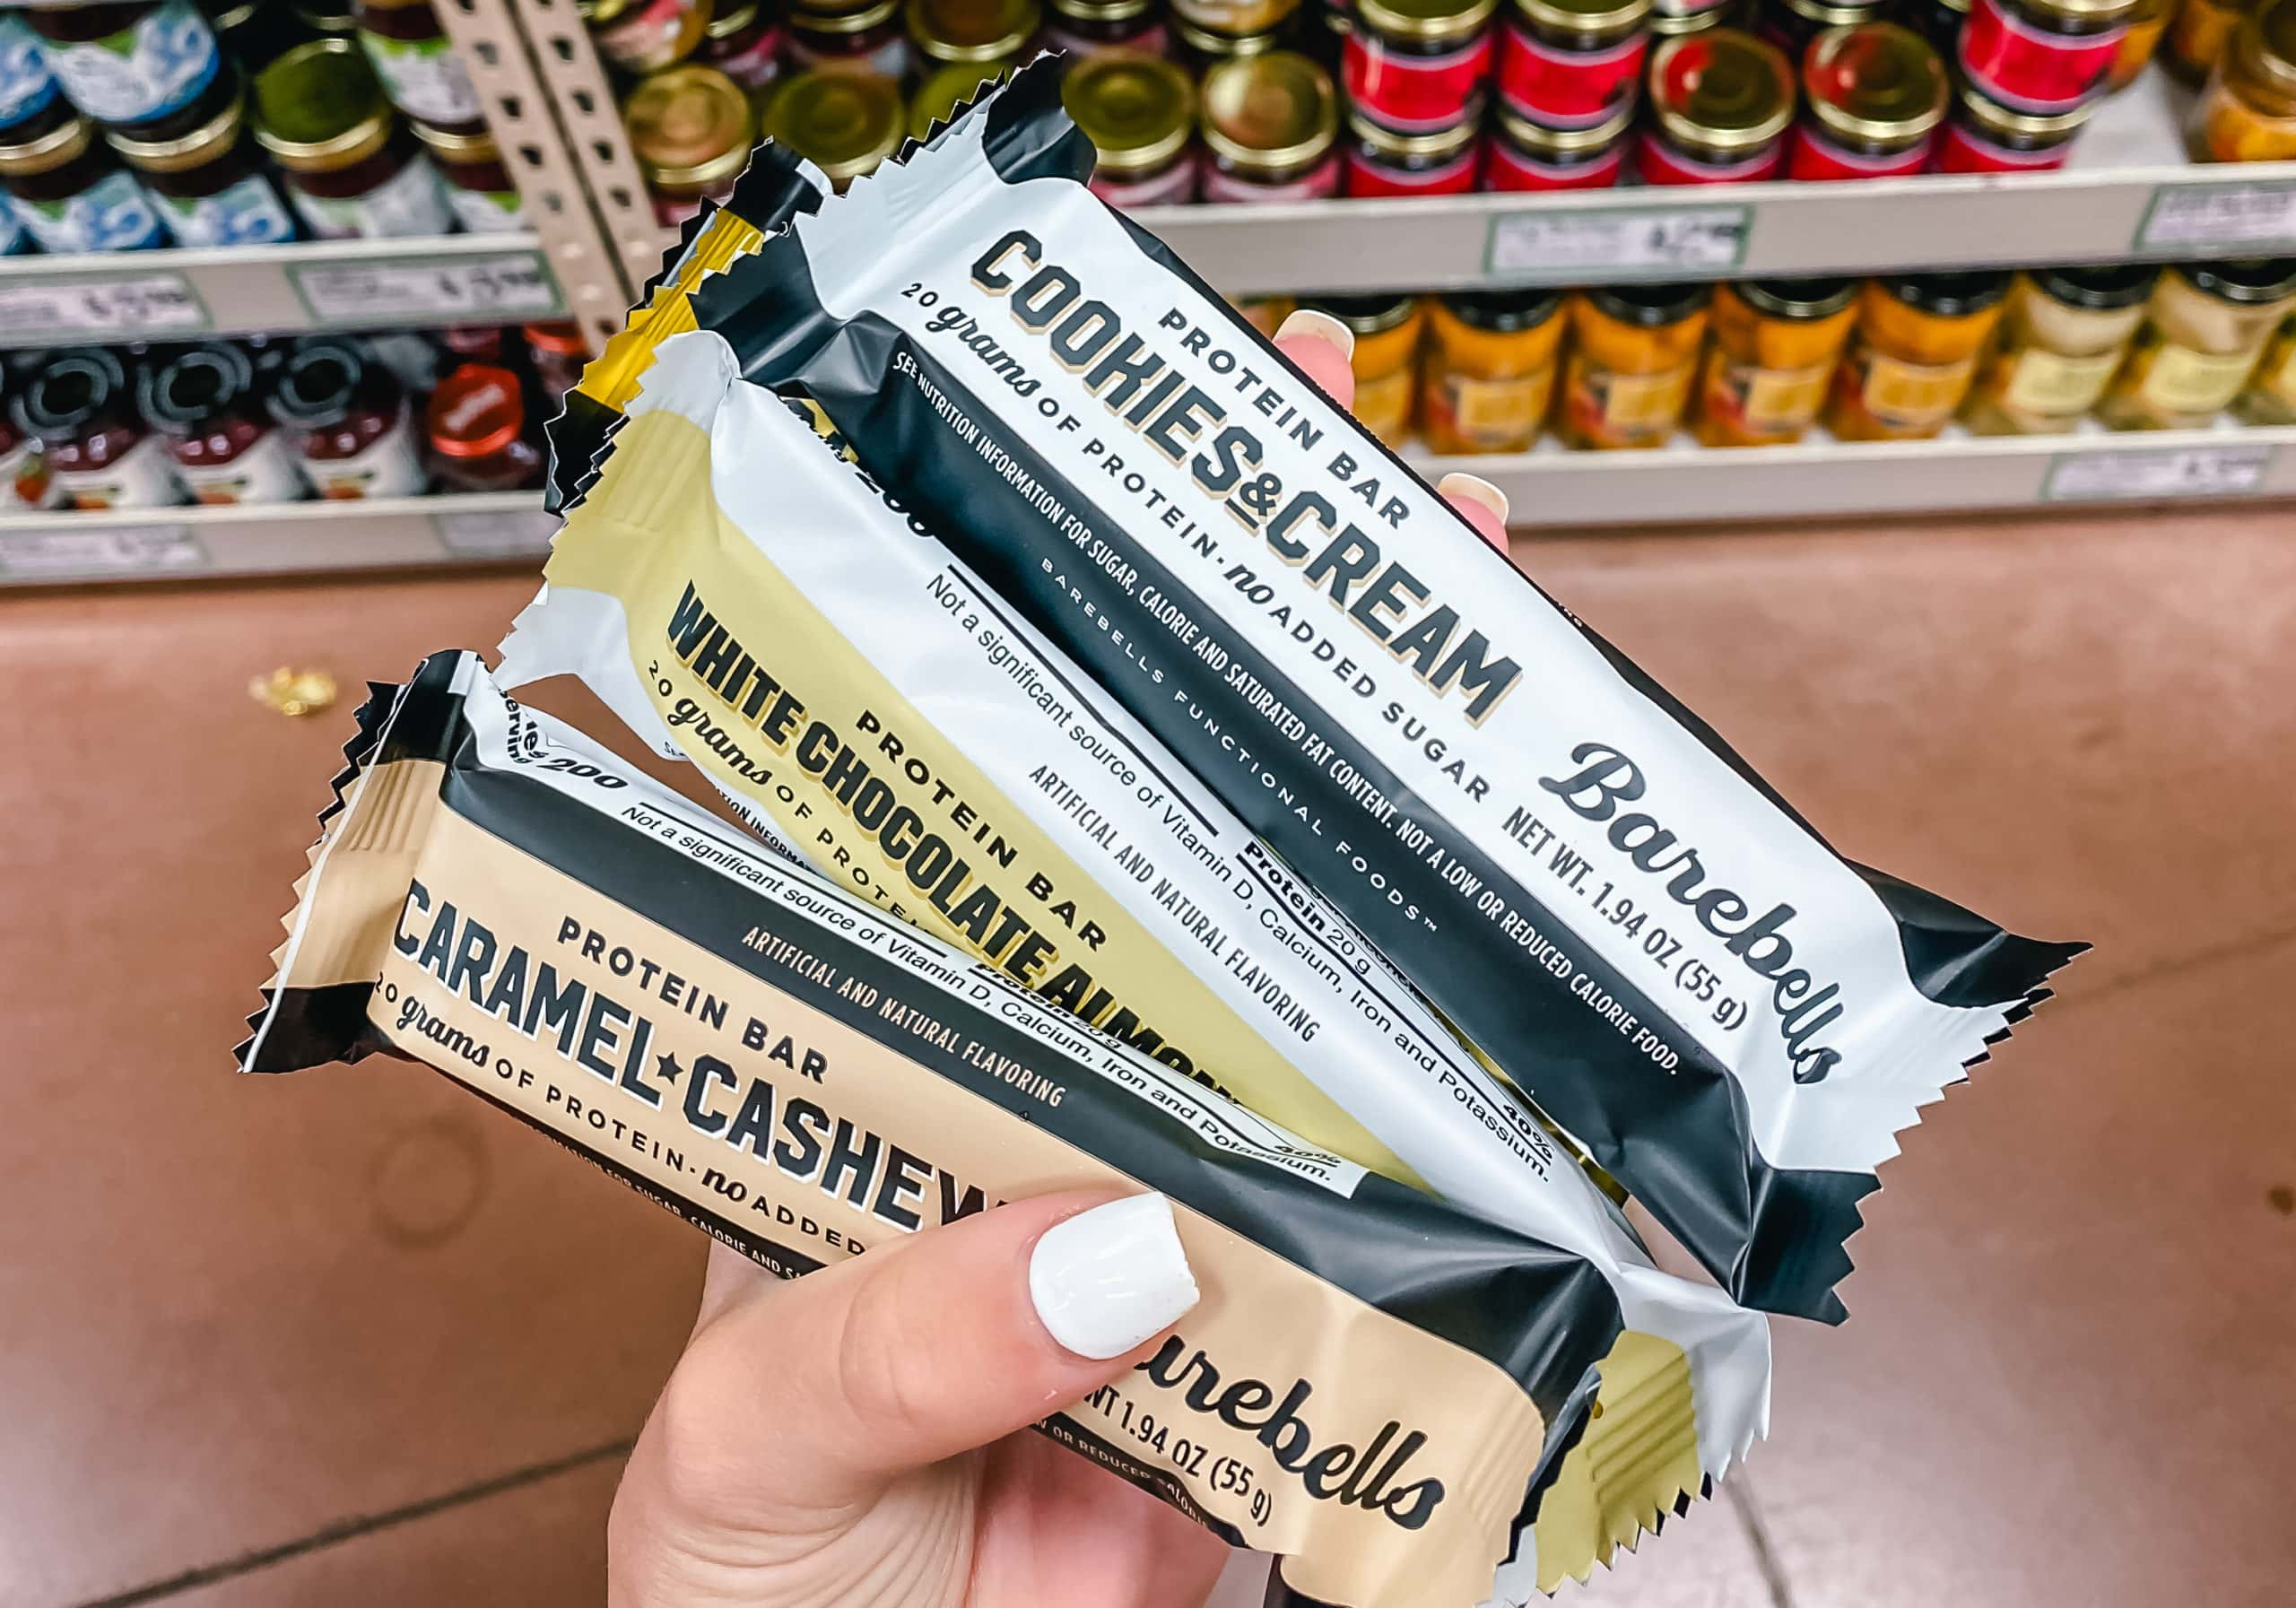 Barebells Protein Bars from Trader Joe's. The Best Things to Buy at Trader Joe's.